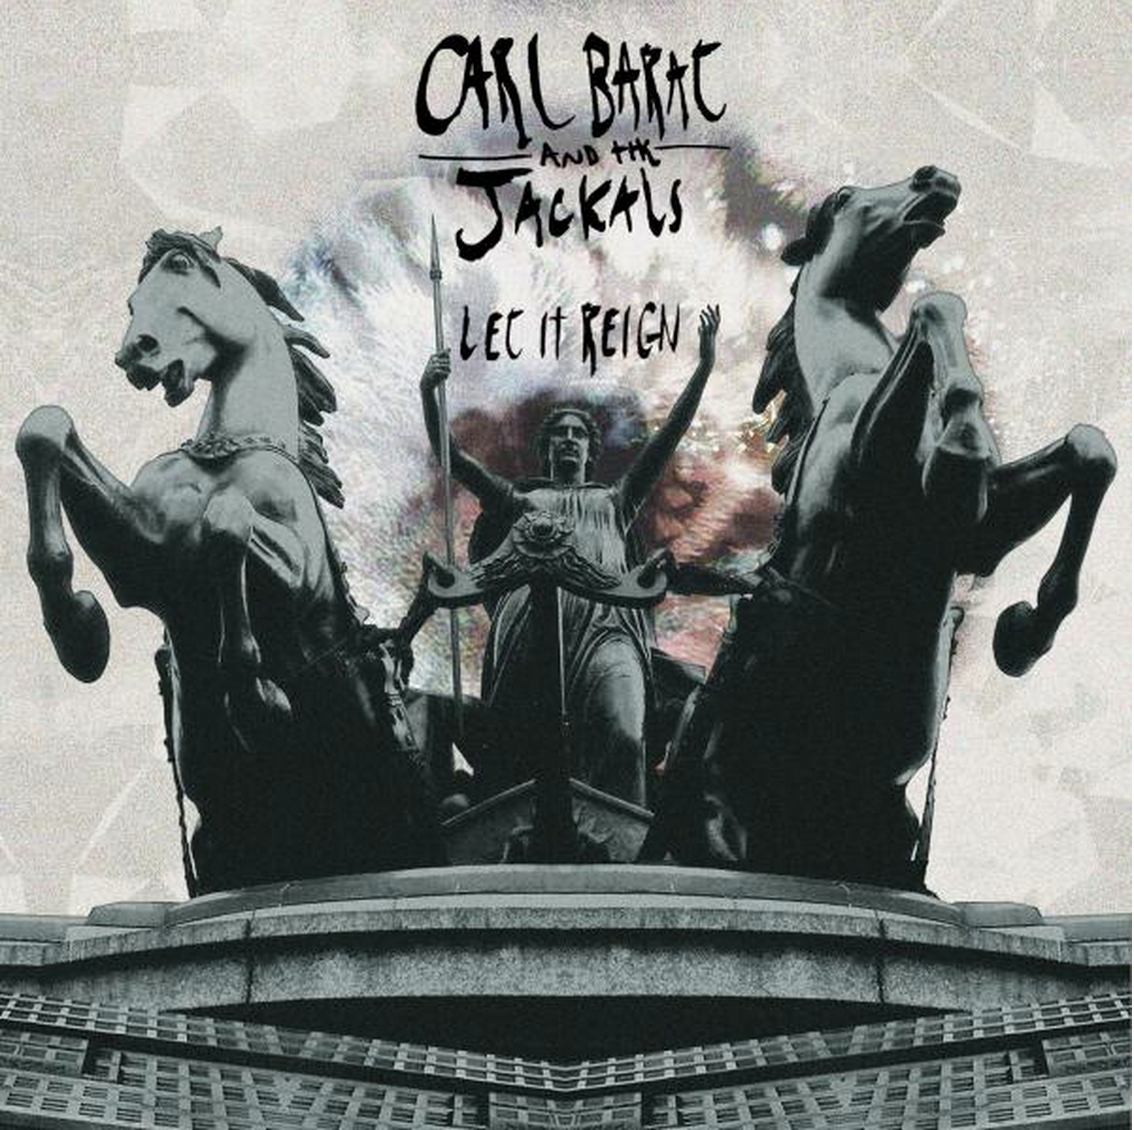 carl-barat-and-the-jacaks-let-it-reign